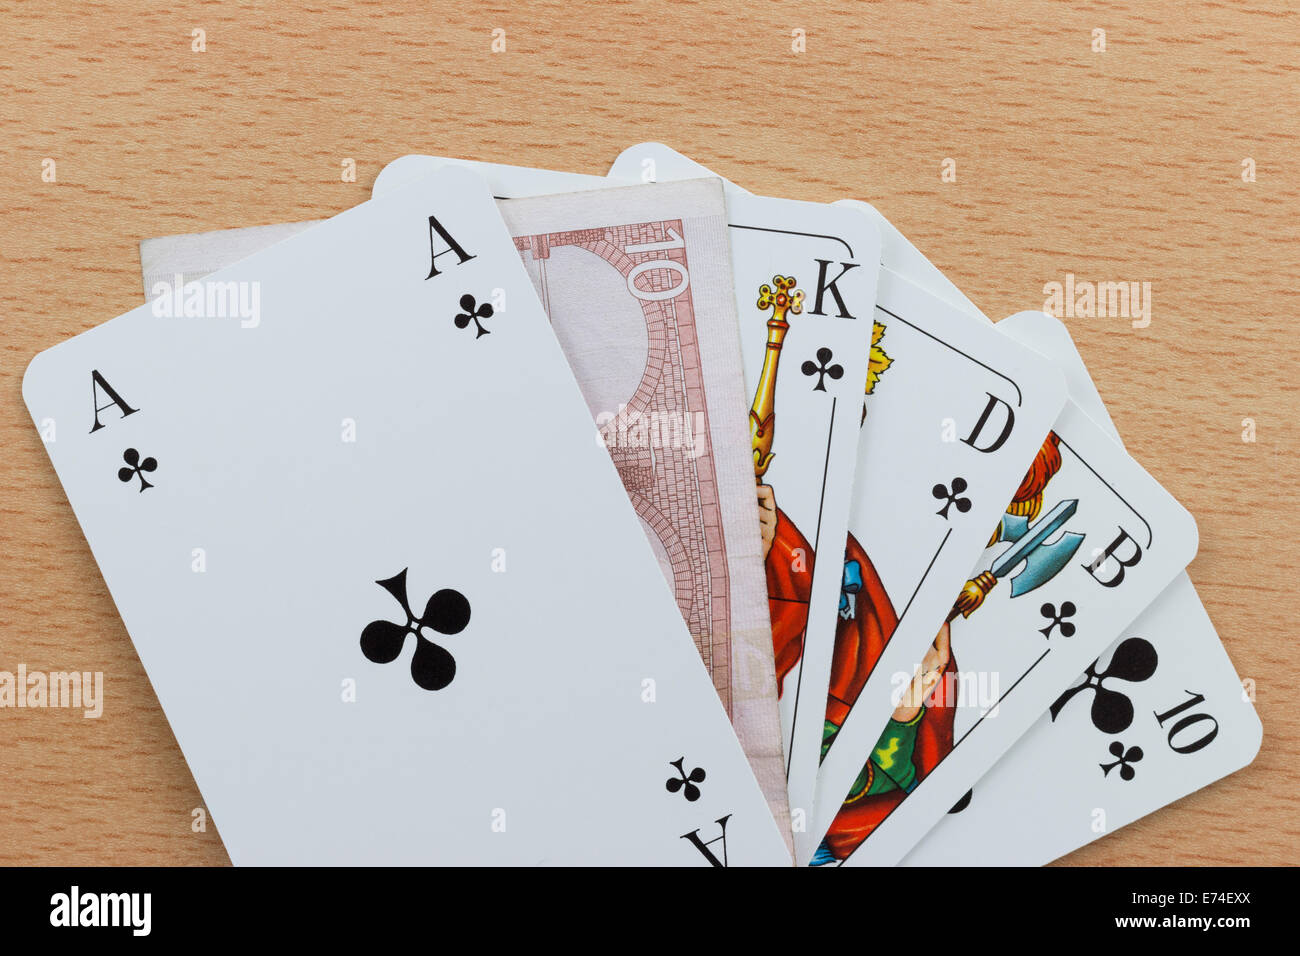 Deck of poker cards showing a Royal Flush with a Euro note - Stock Image